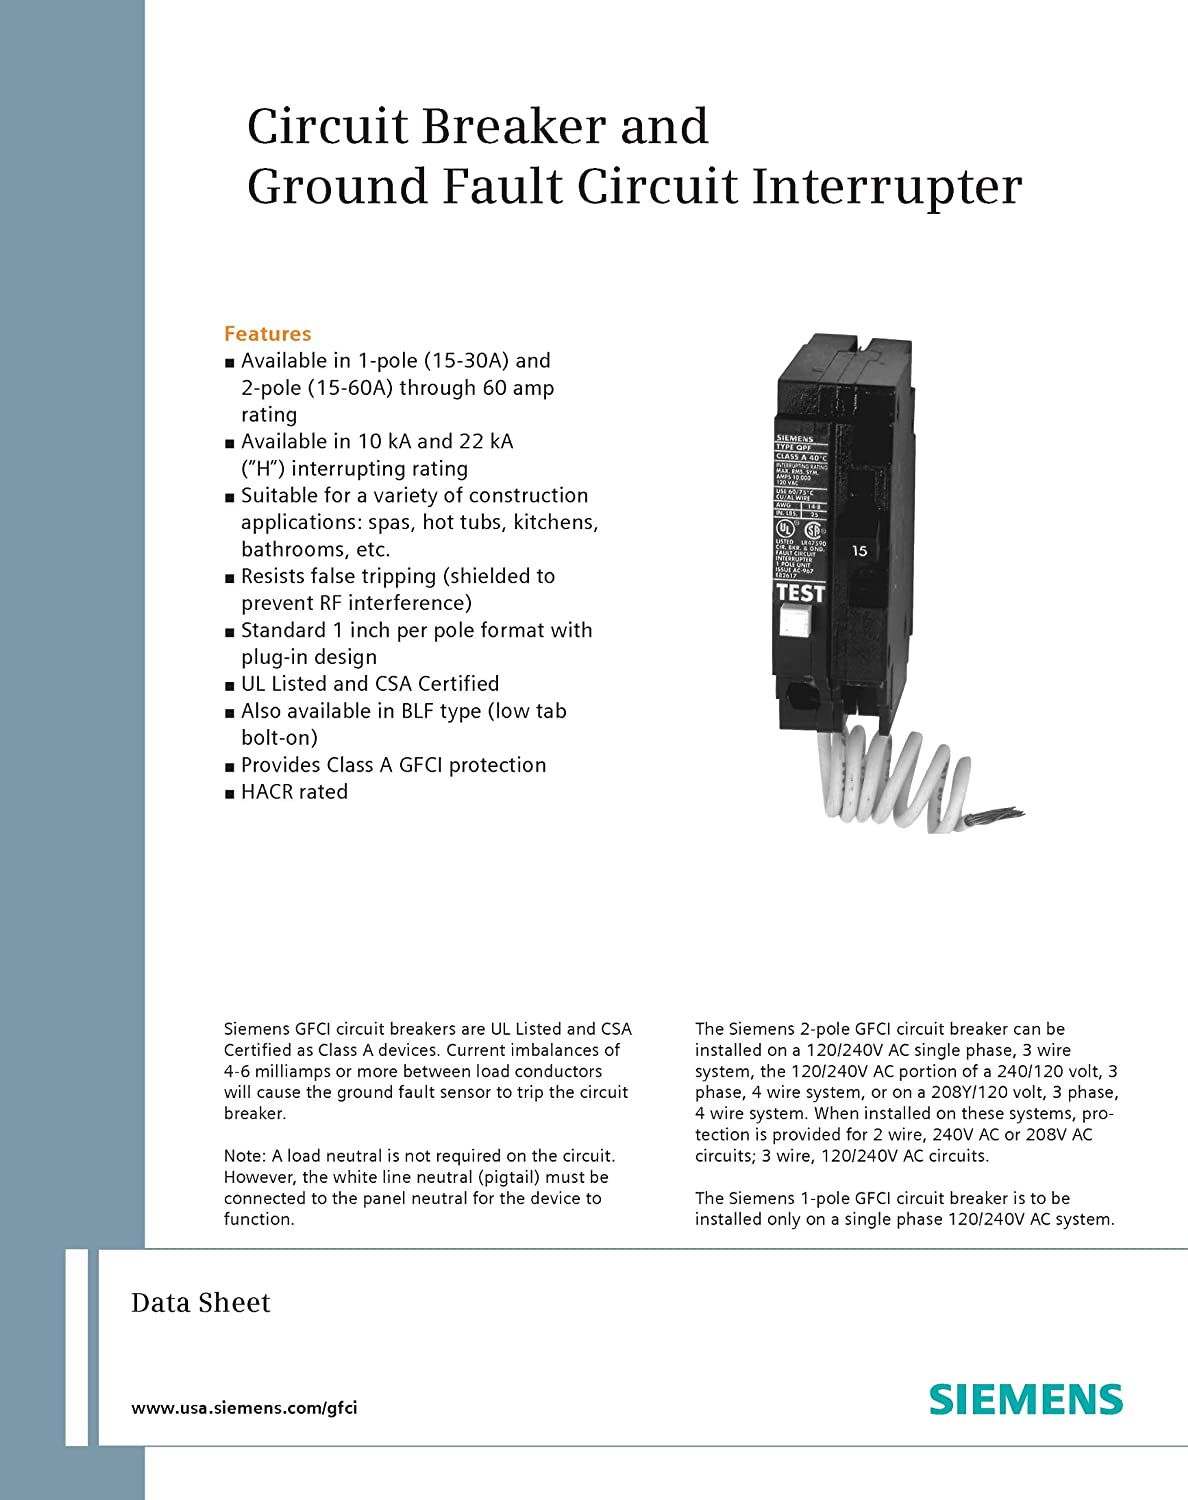 siemens gfci circuit breaker wiring gfci breaker installation usbmodels co